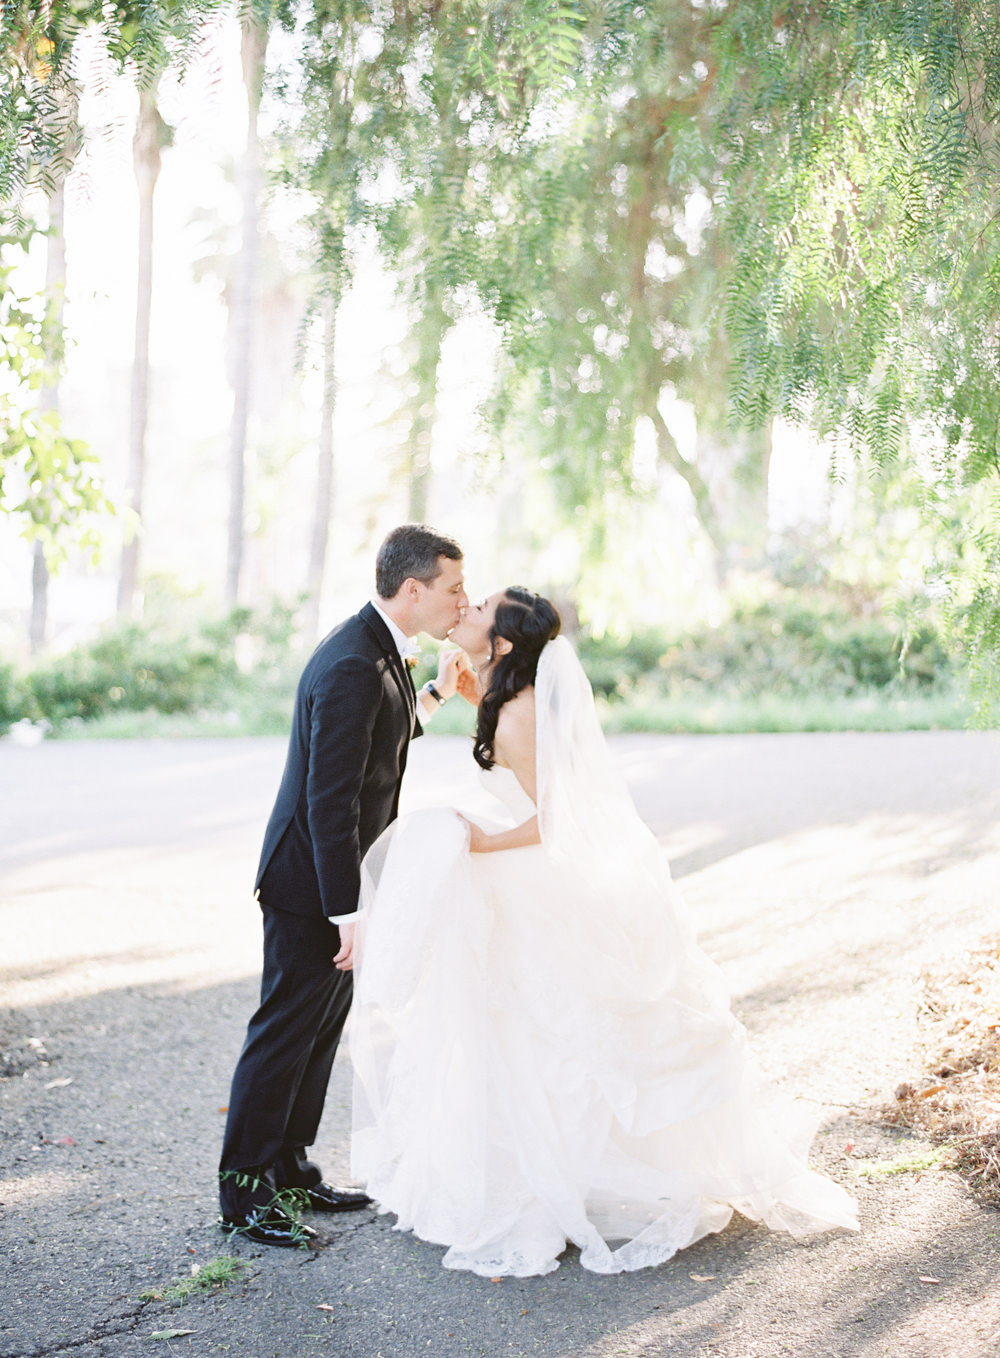 RomanticGardenWedding_WhiskersandWillow_096.jpg